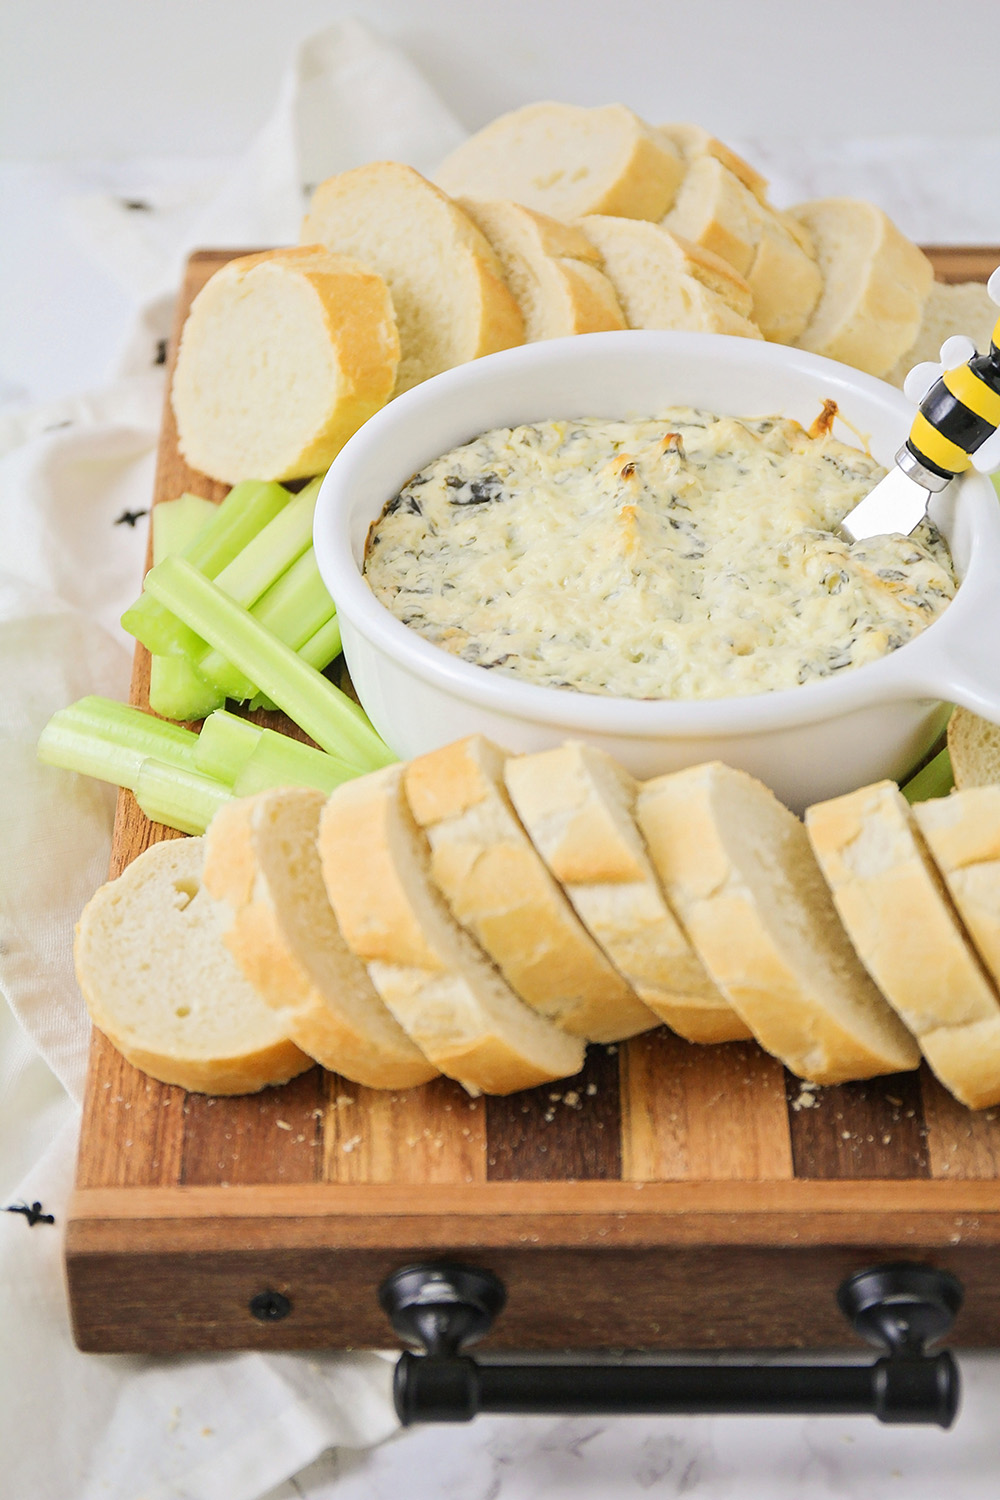 This cheesy spinach and artichoke dip has the most delicious combination of flavors, and is so easy to make!